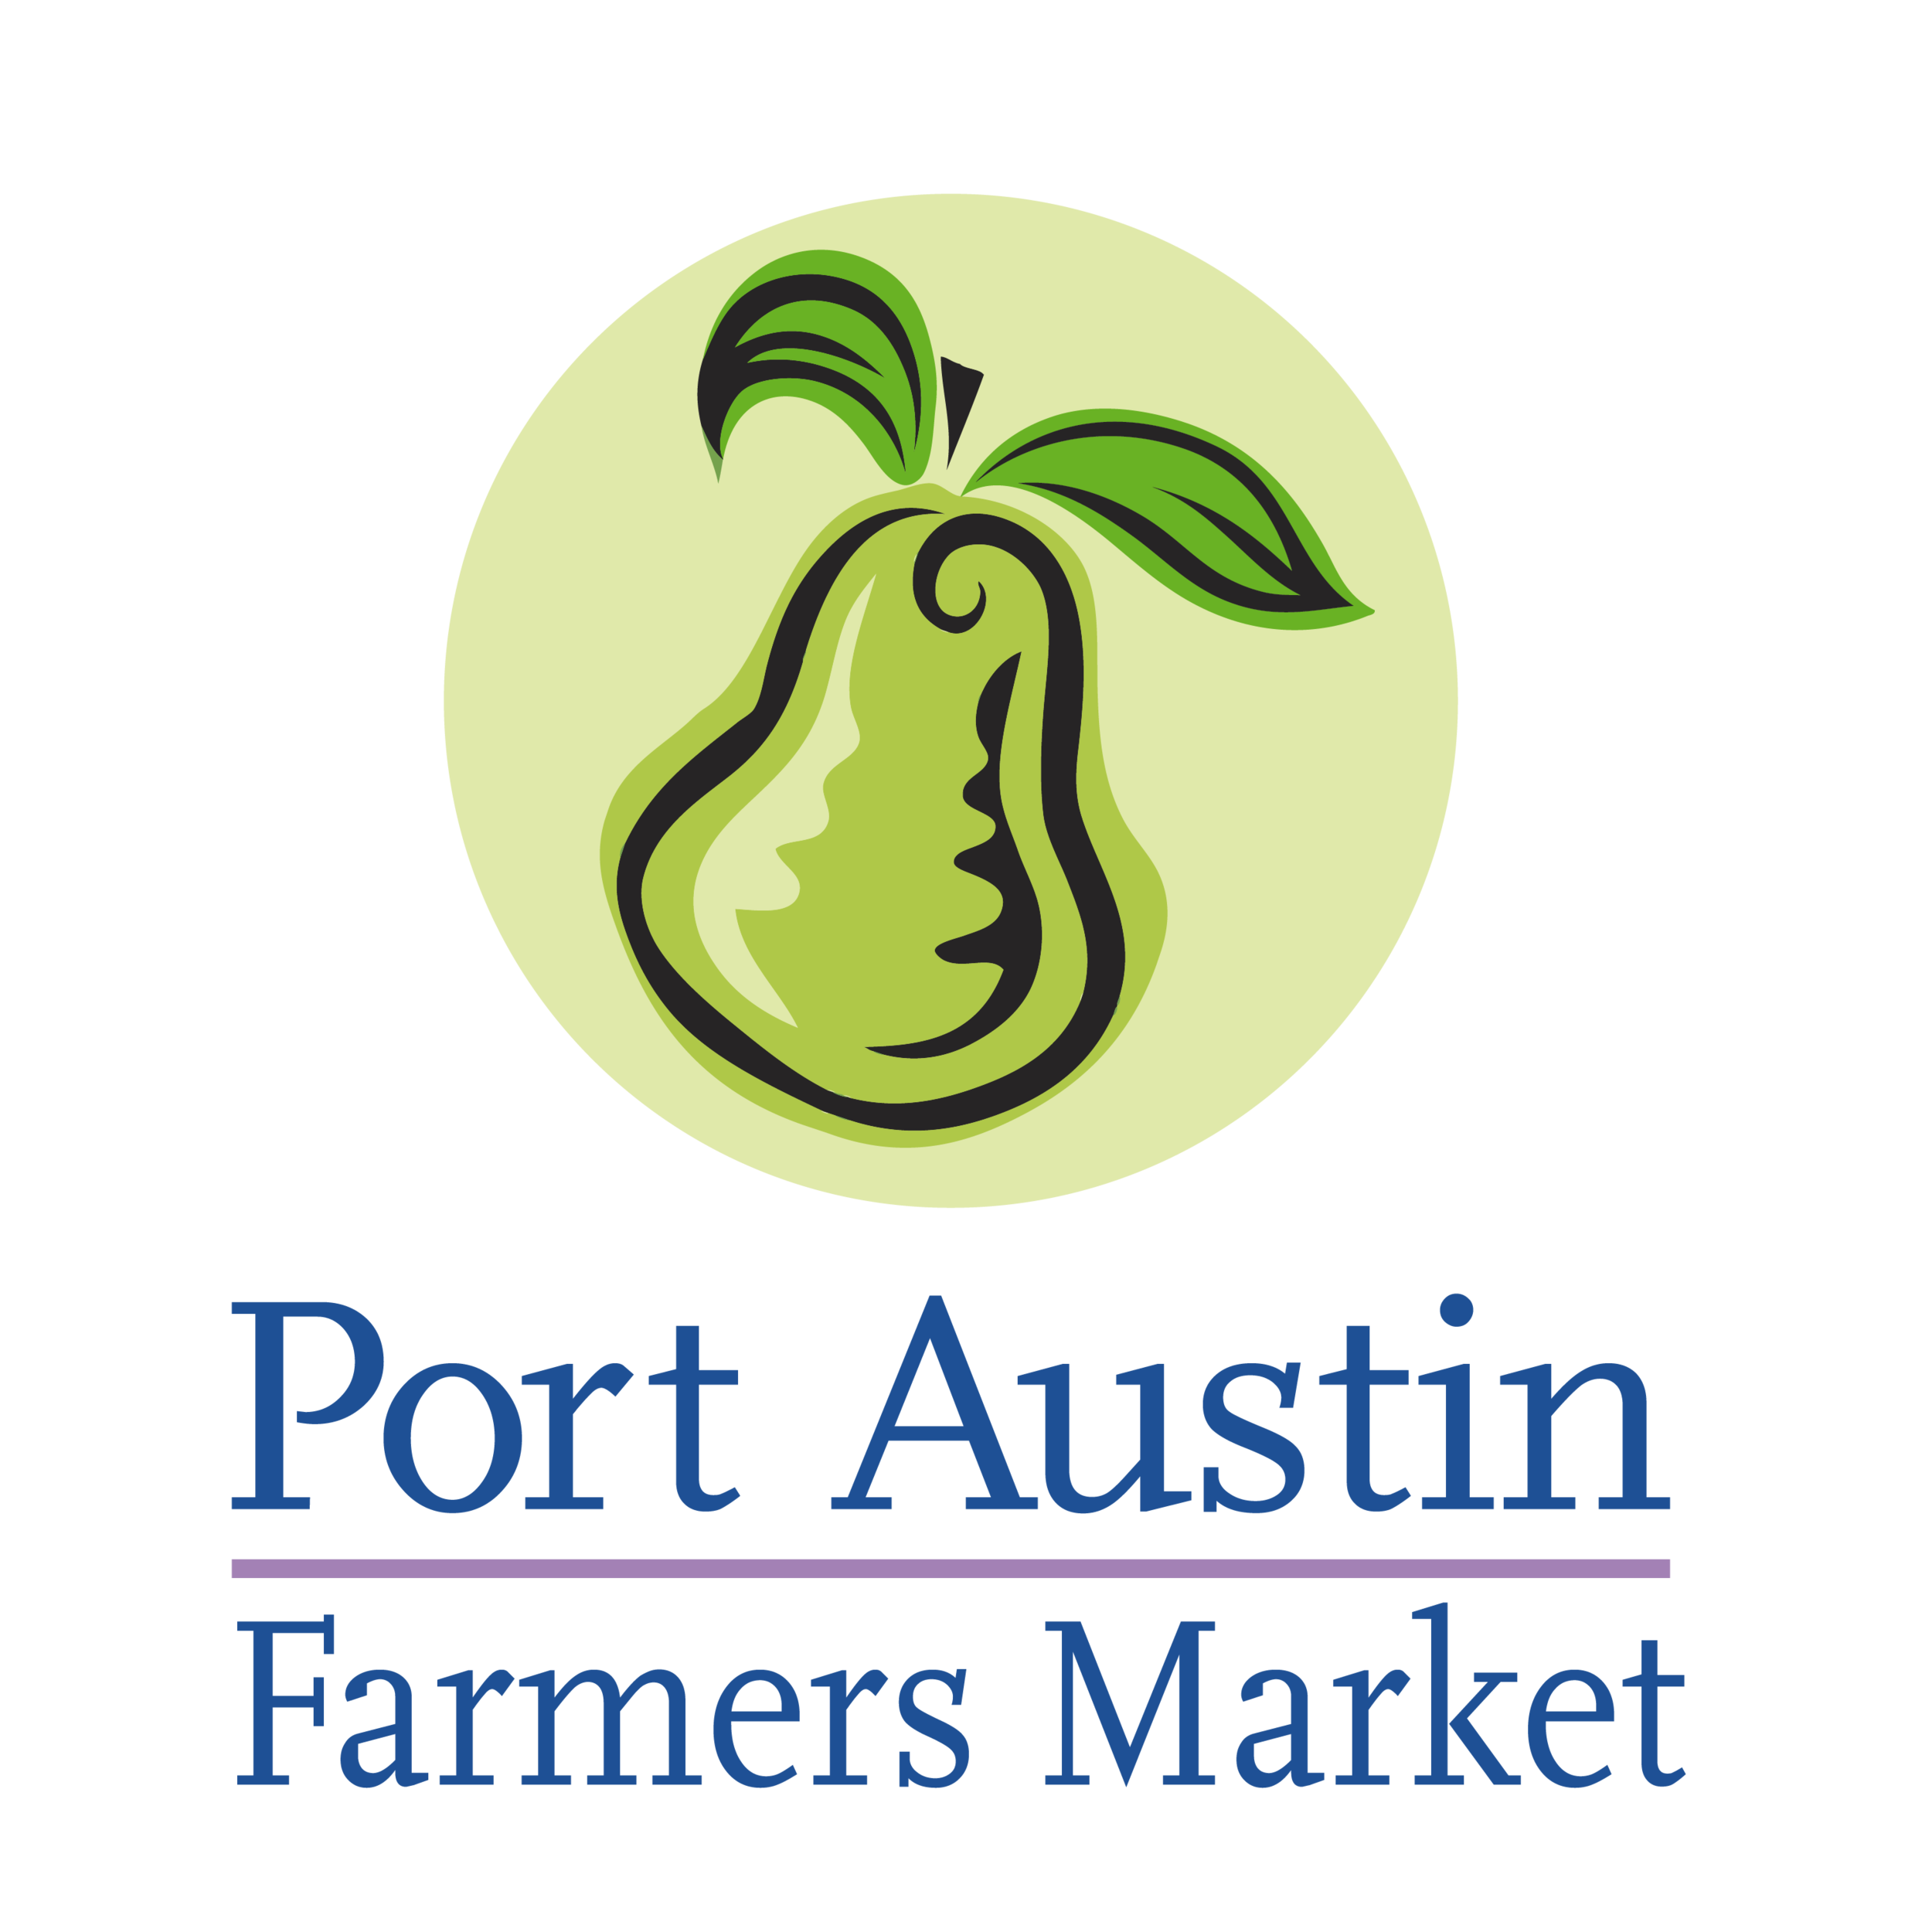 Port Austin Farmers Market